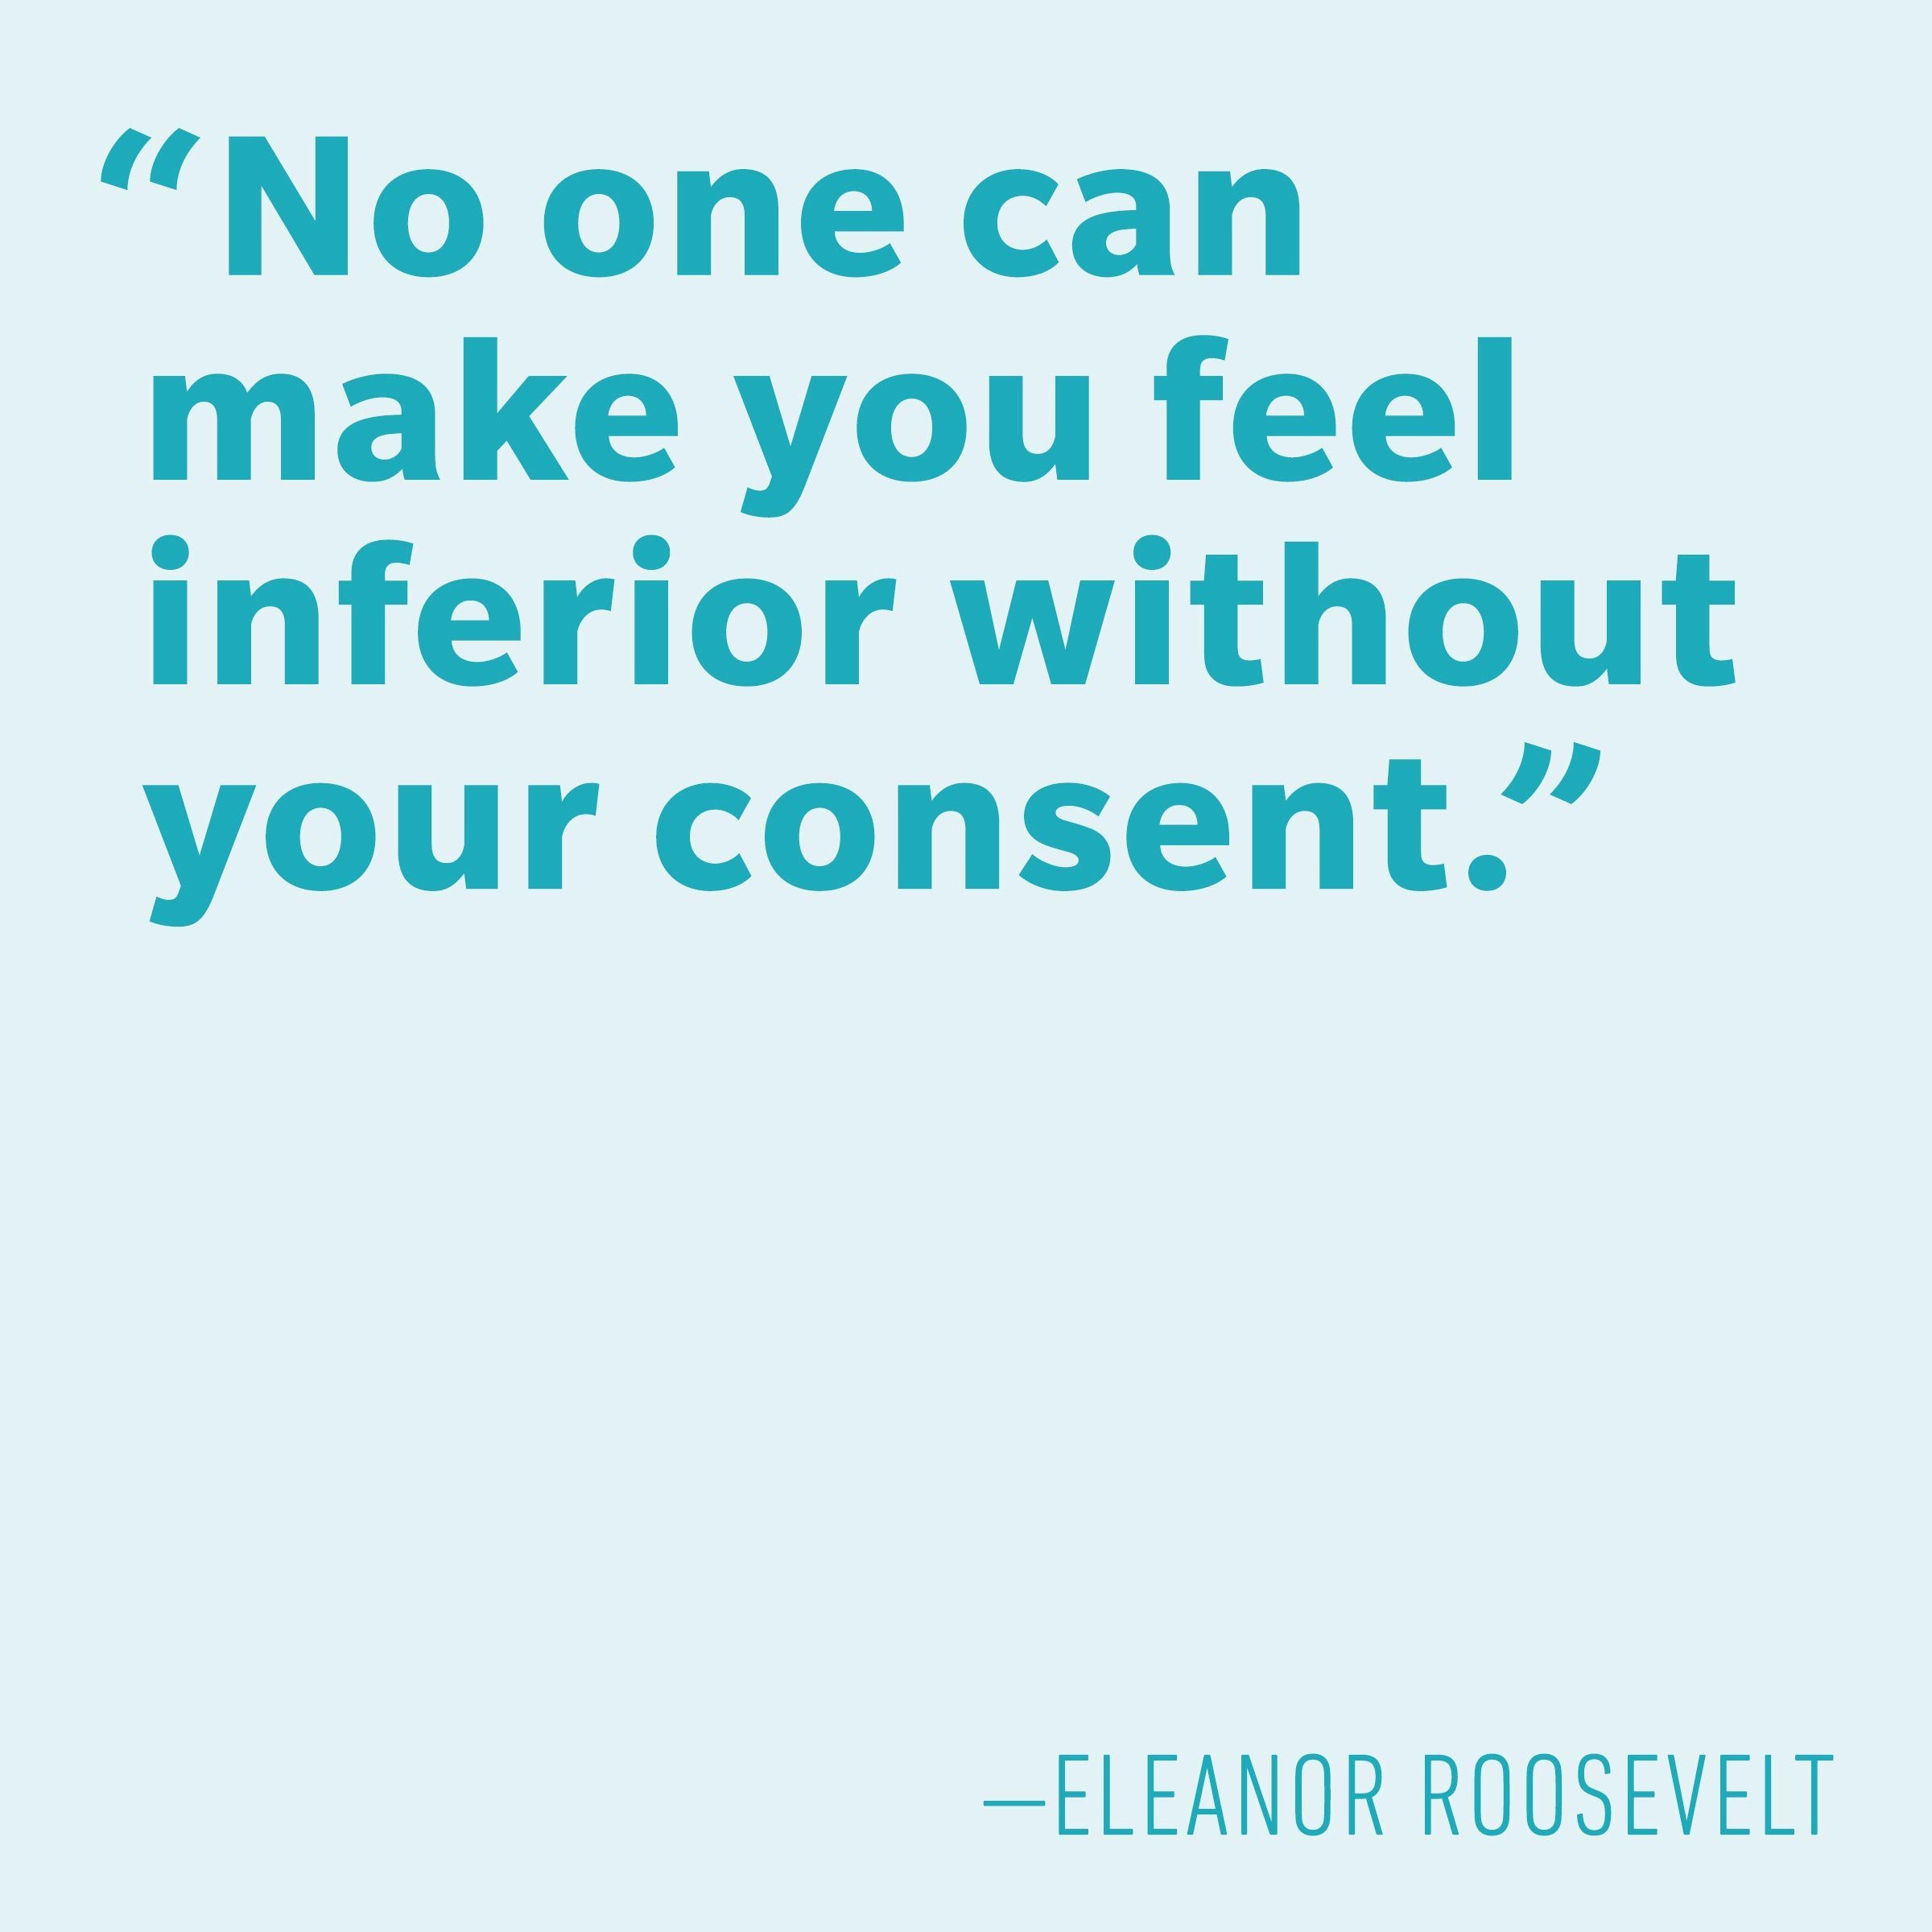 Motivational quotes - Eleanor Roosevelt